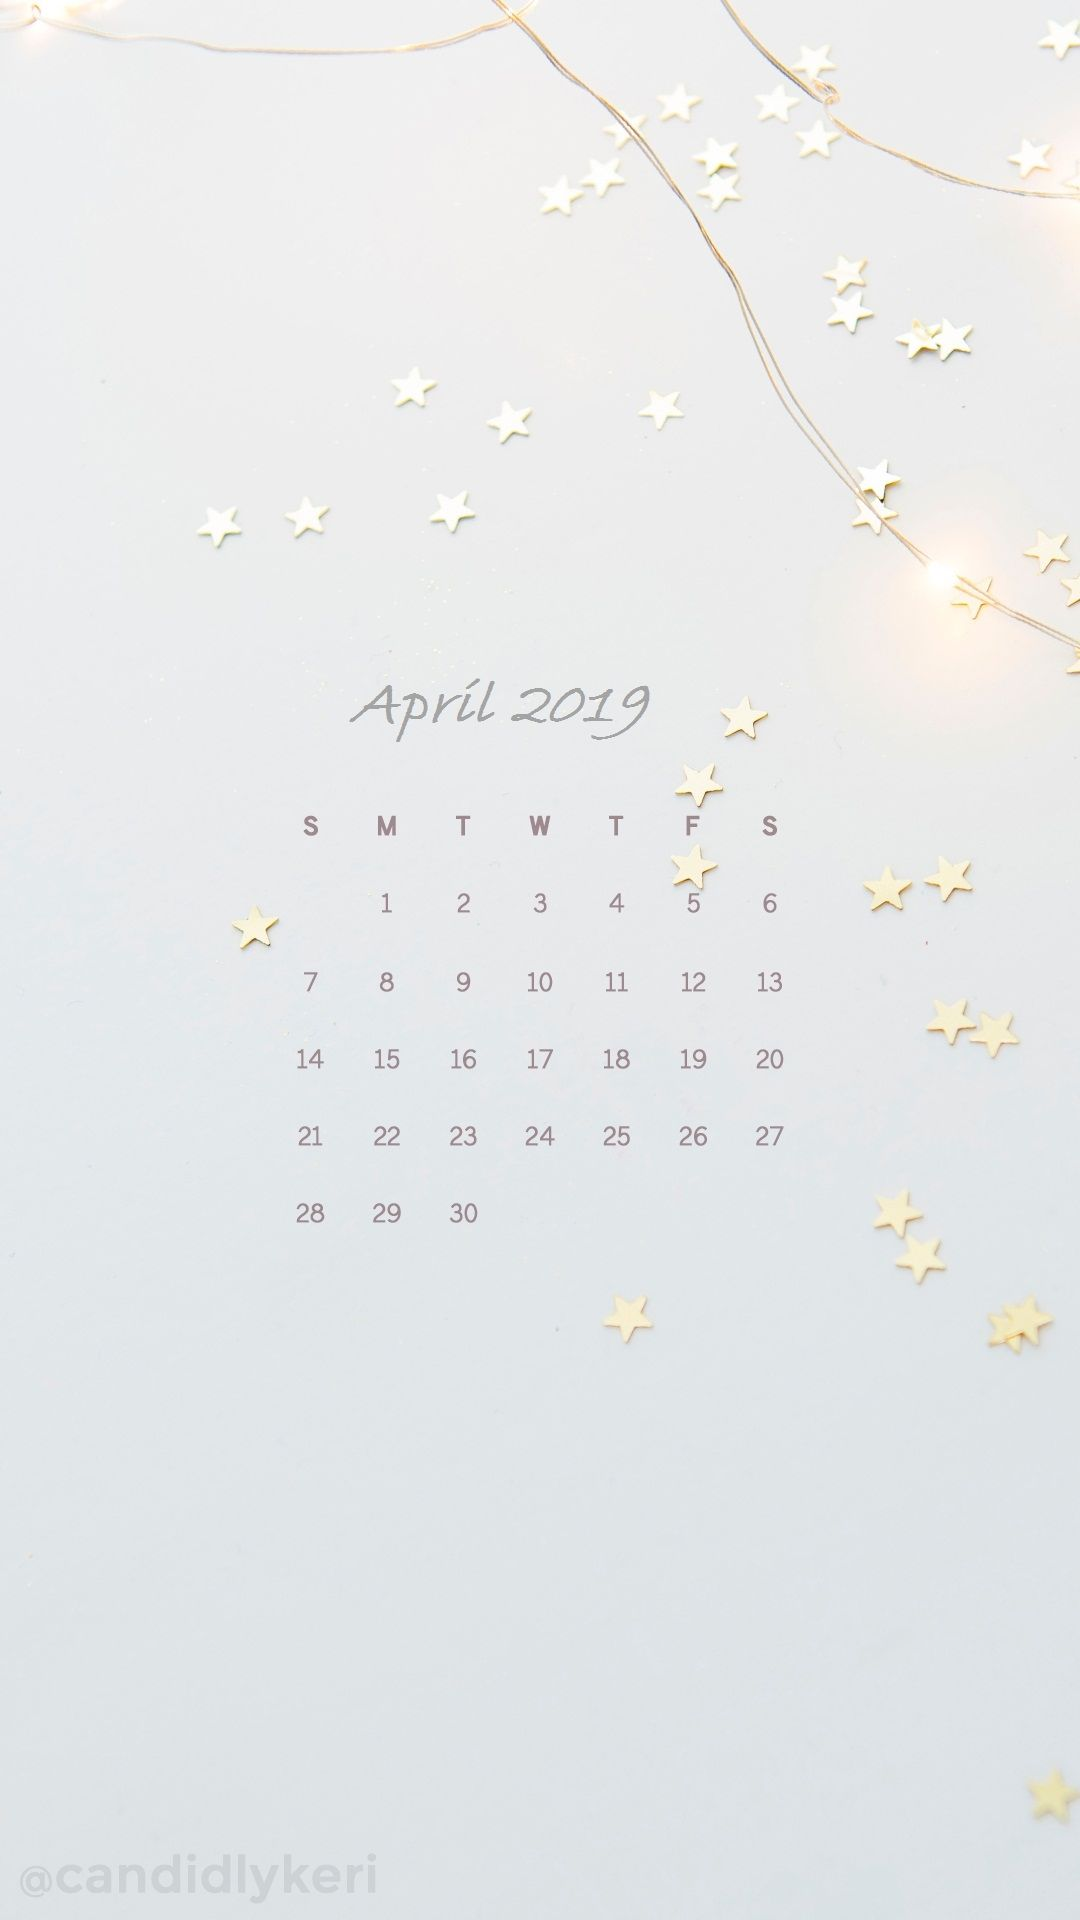 April Iphone Calendar Wallpaper Calendar April